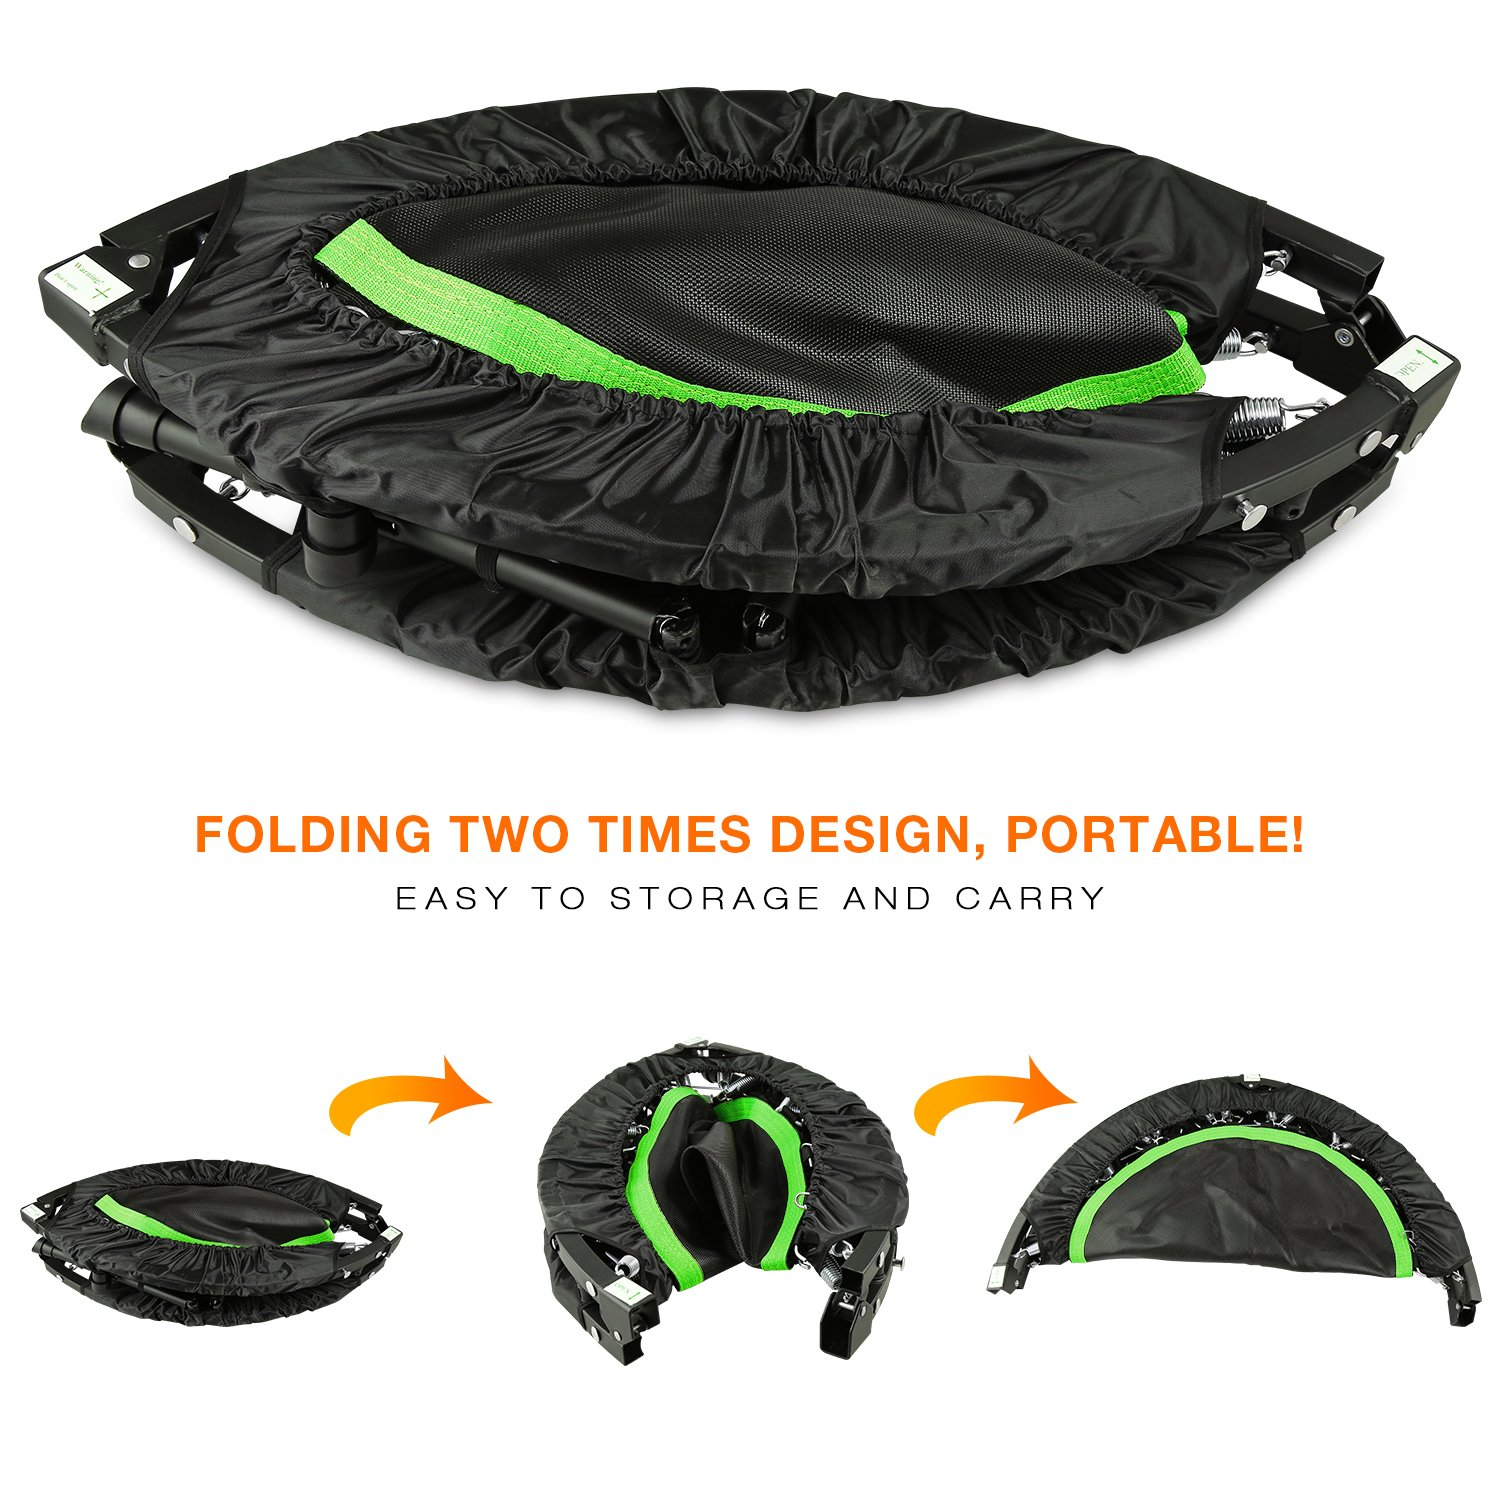 ANCHEER Foldable 40'' Mini Trampoline Rebounder, Max Load 300lbs Rebounder Trampoline Exercise Fitness Trampoline for Indoor/Garden/Workout Cardio by ANCHEER (Image #5)